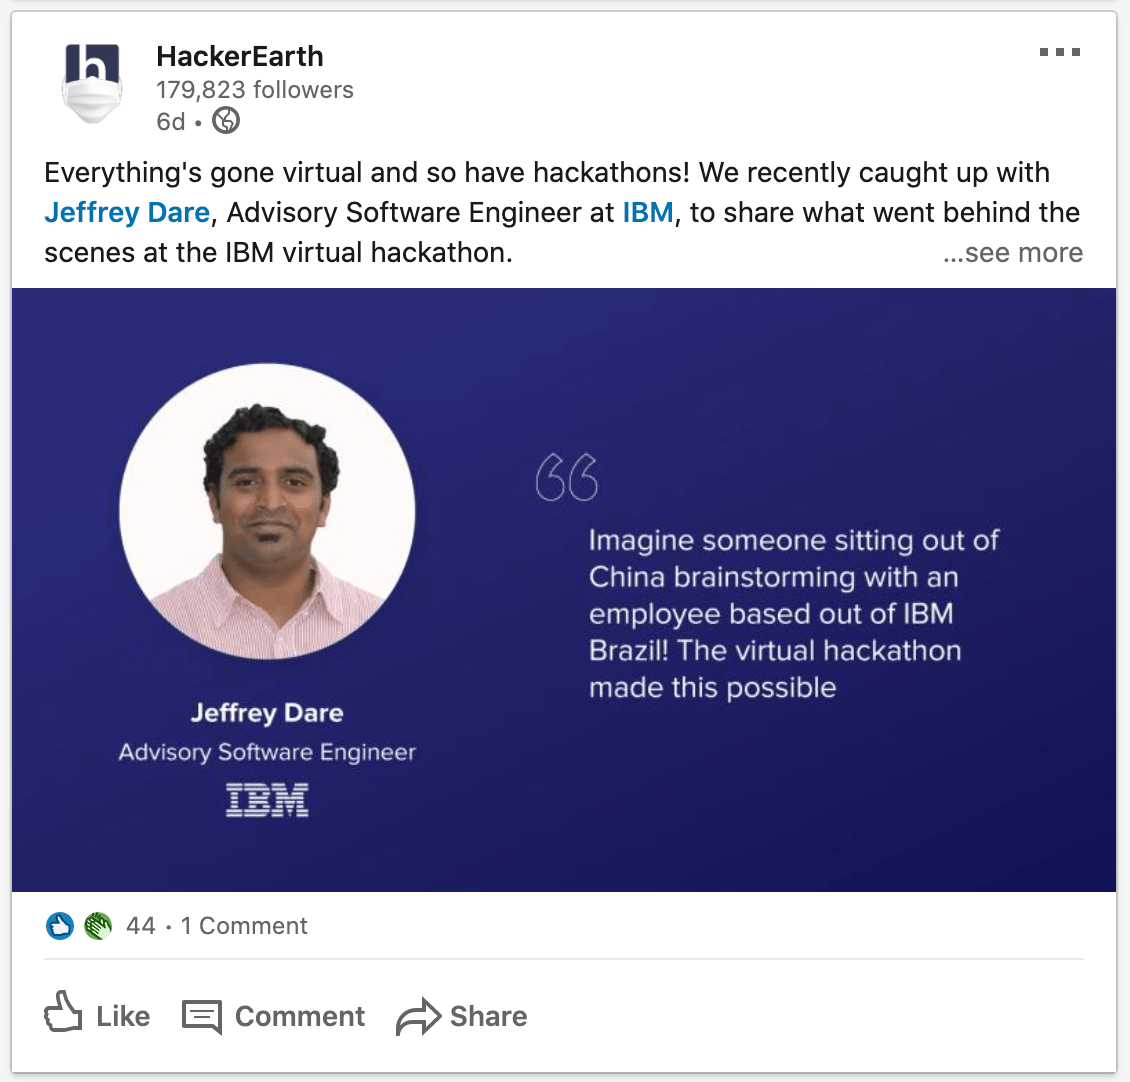 HackerEarth_LinkedIn_Post